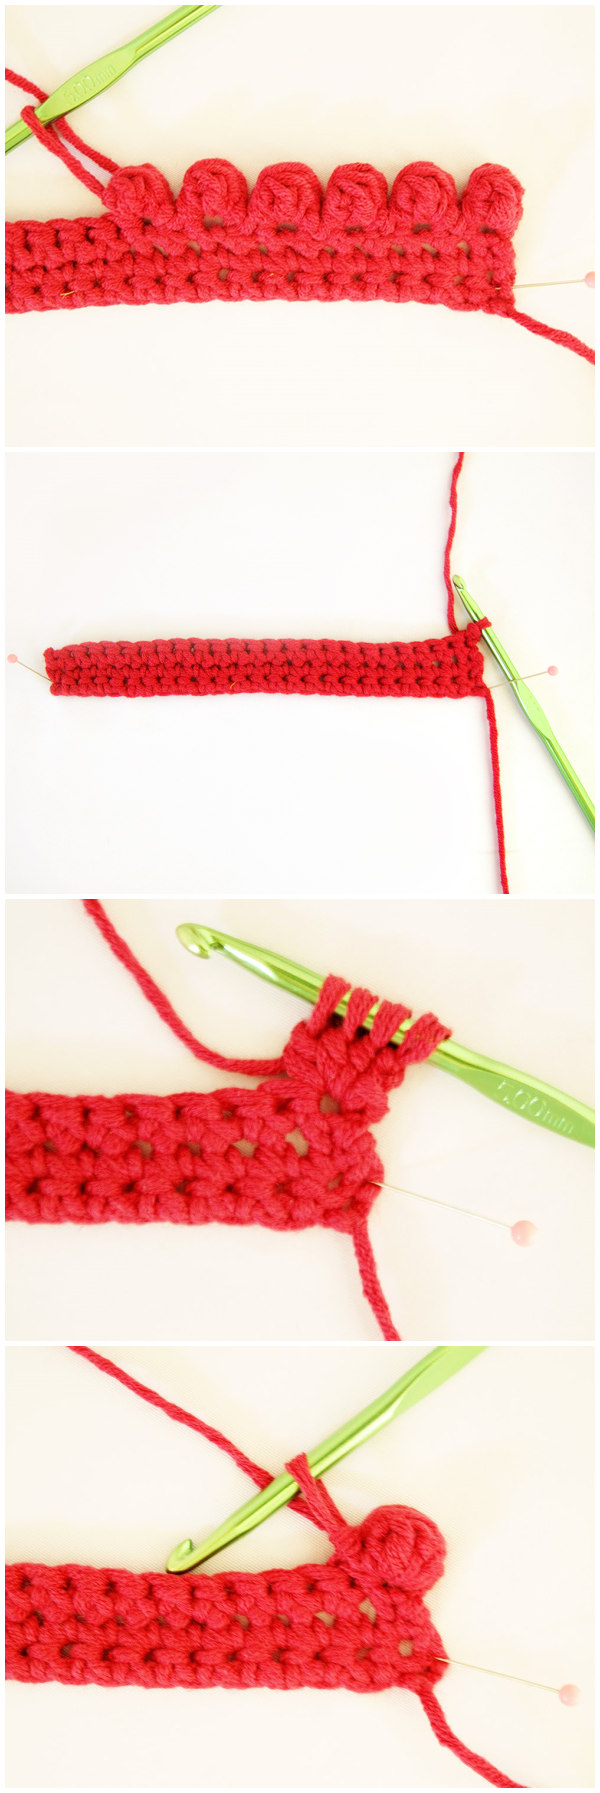 Crocheted Bobble Edging Tutorial